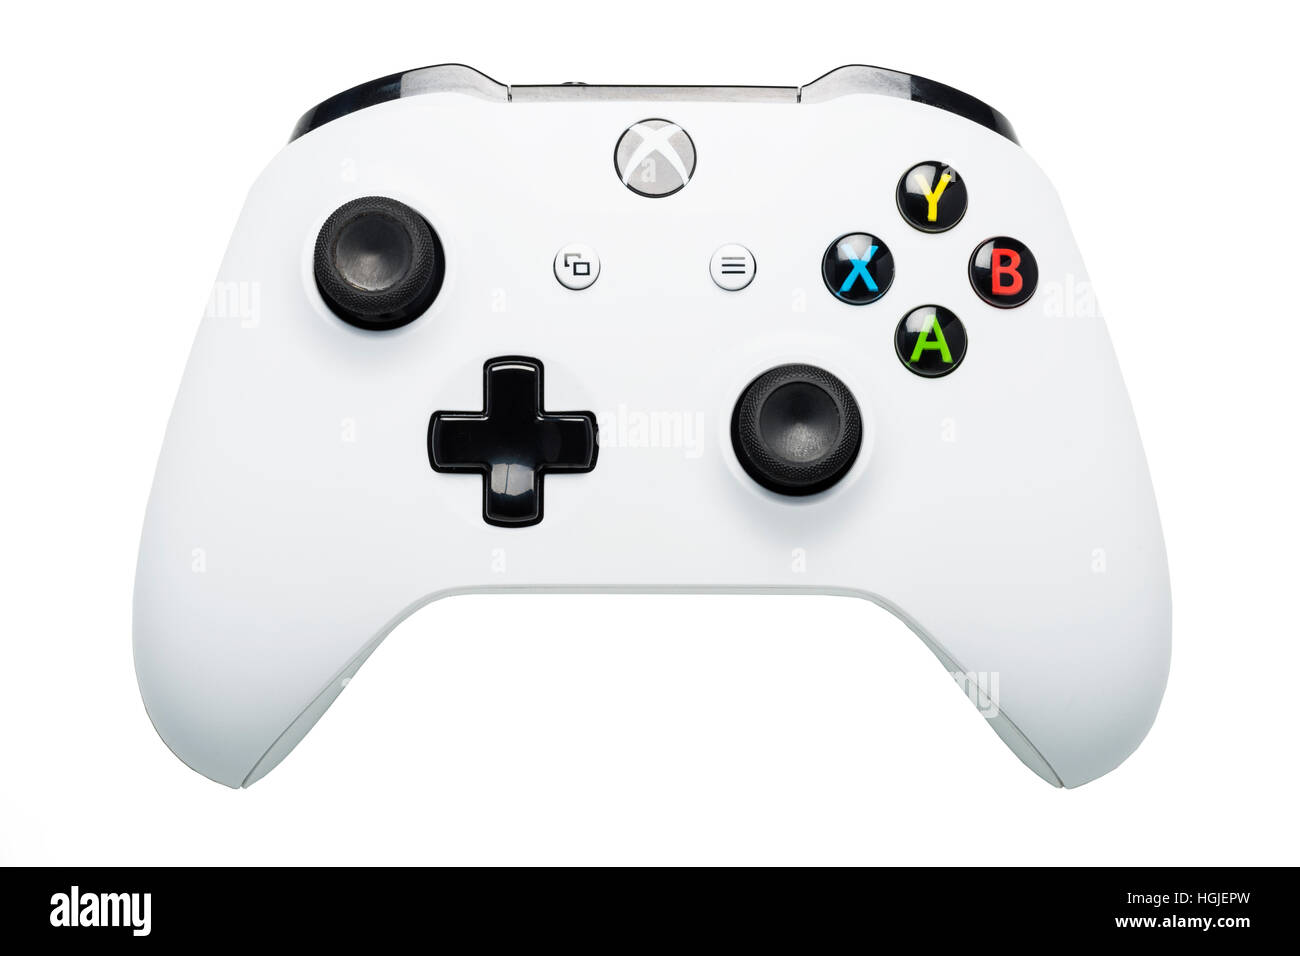 An XBOX ONE S games controller on a white background - Stock Image